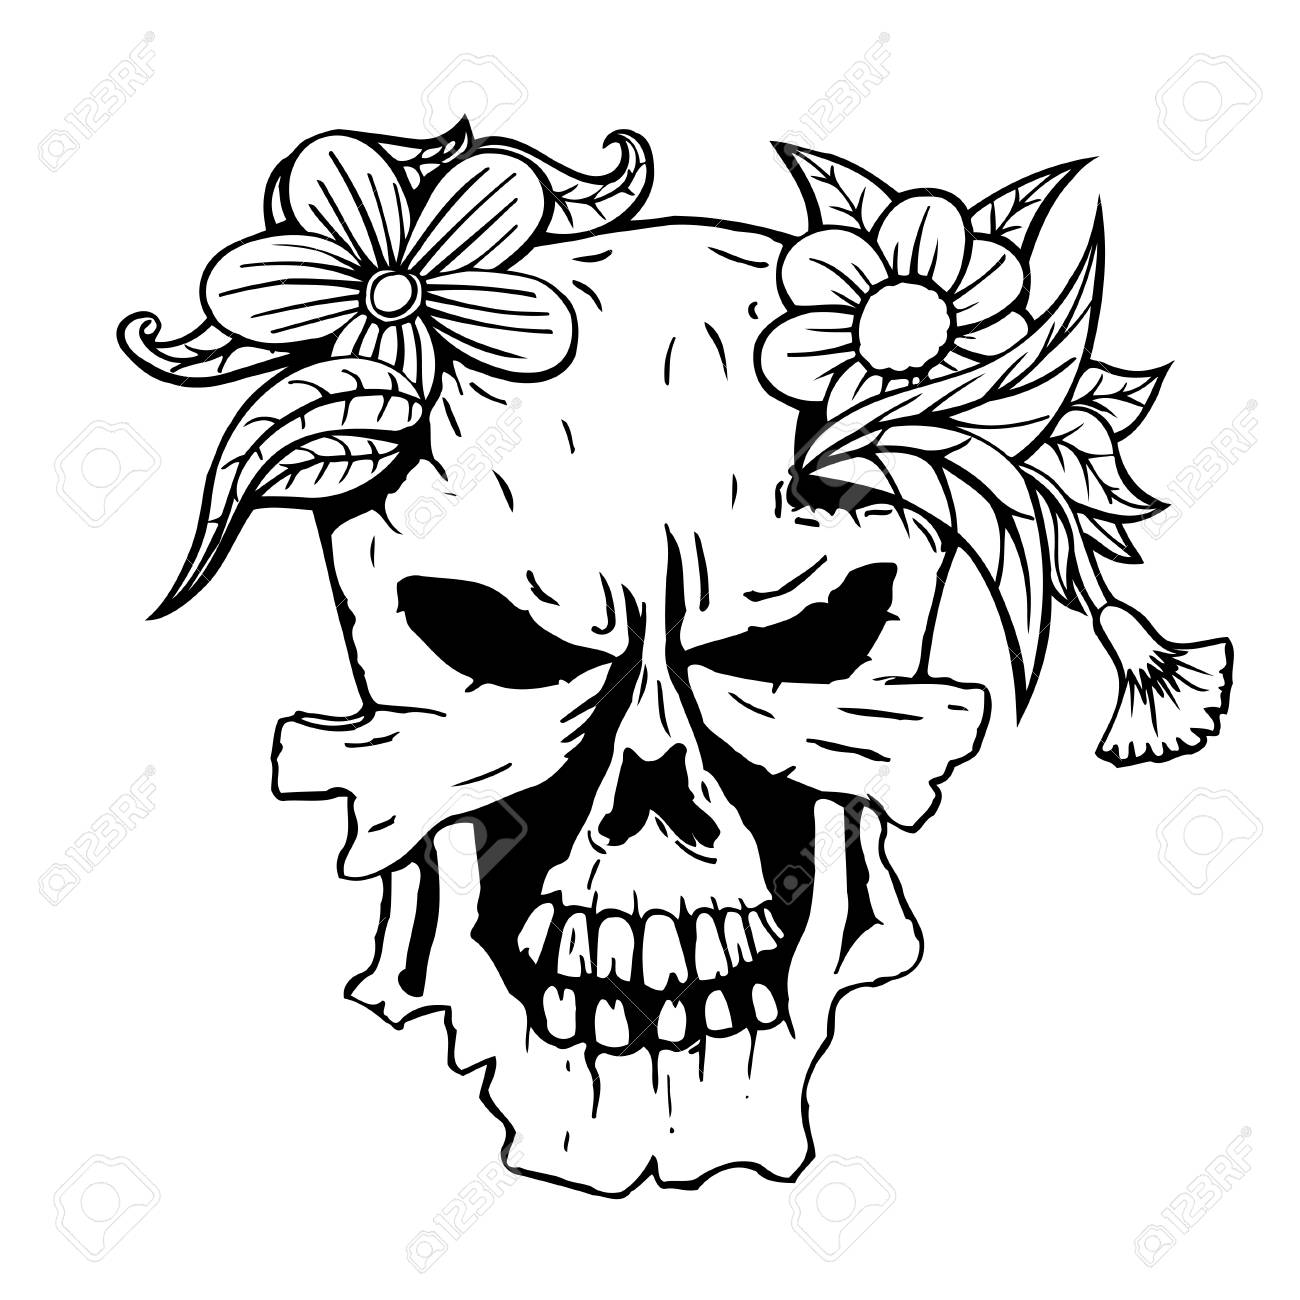 Skull With The Succulent Plants And Flowers Vector Illustration Royalty Free Cliparts Vectors And Stock Illustration Image 64415375